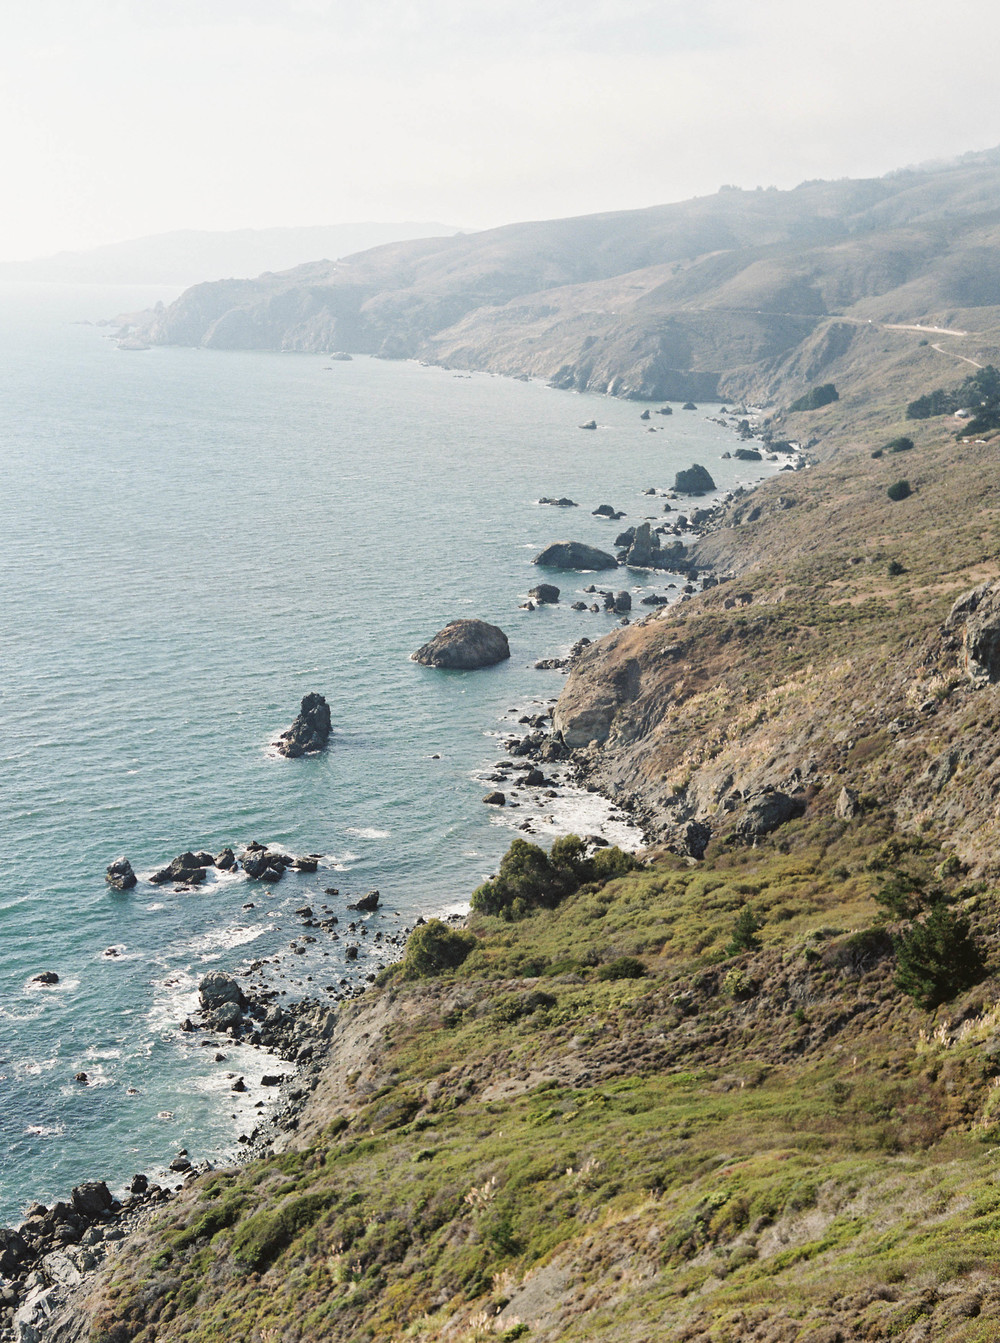 Meghan Mehan Photography - Fine Art Film Wedding Photography - San Francisco | Napa | Sonoma | Big Sur | Santa Barbara - 009.jpg